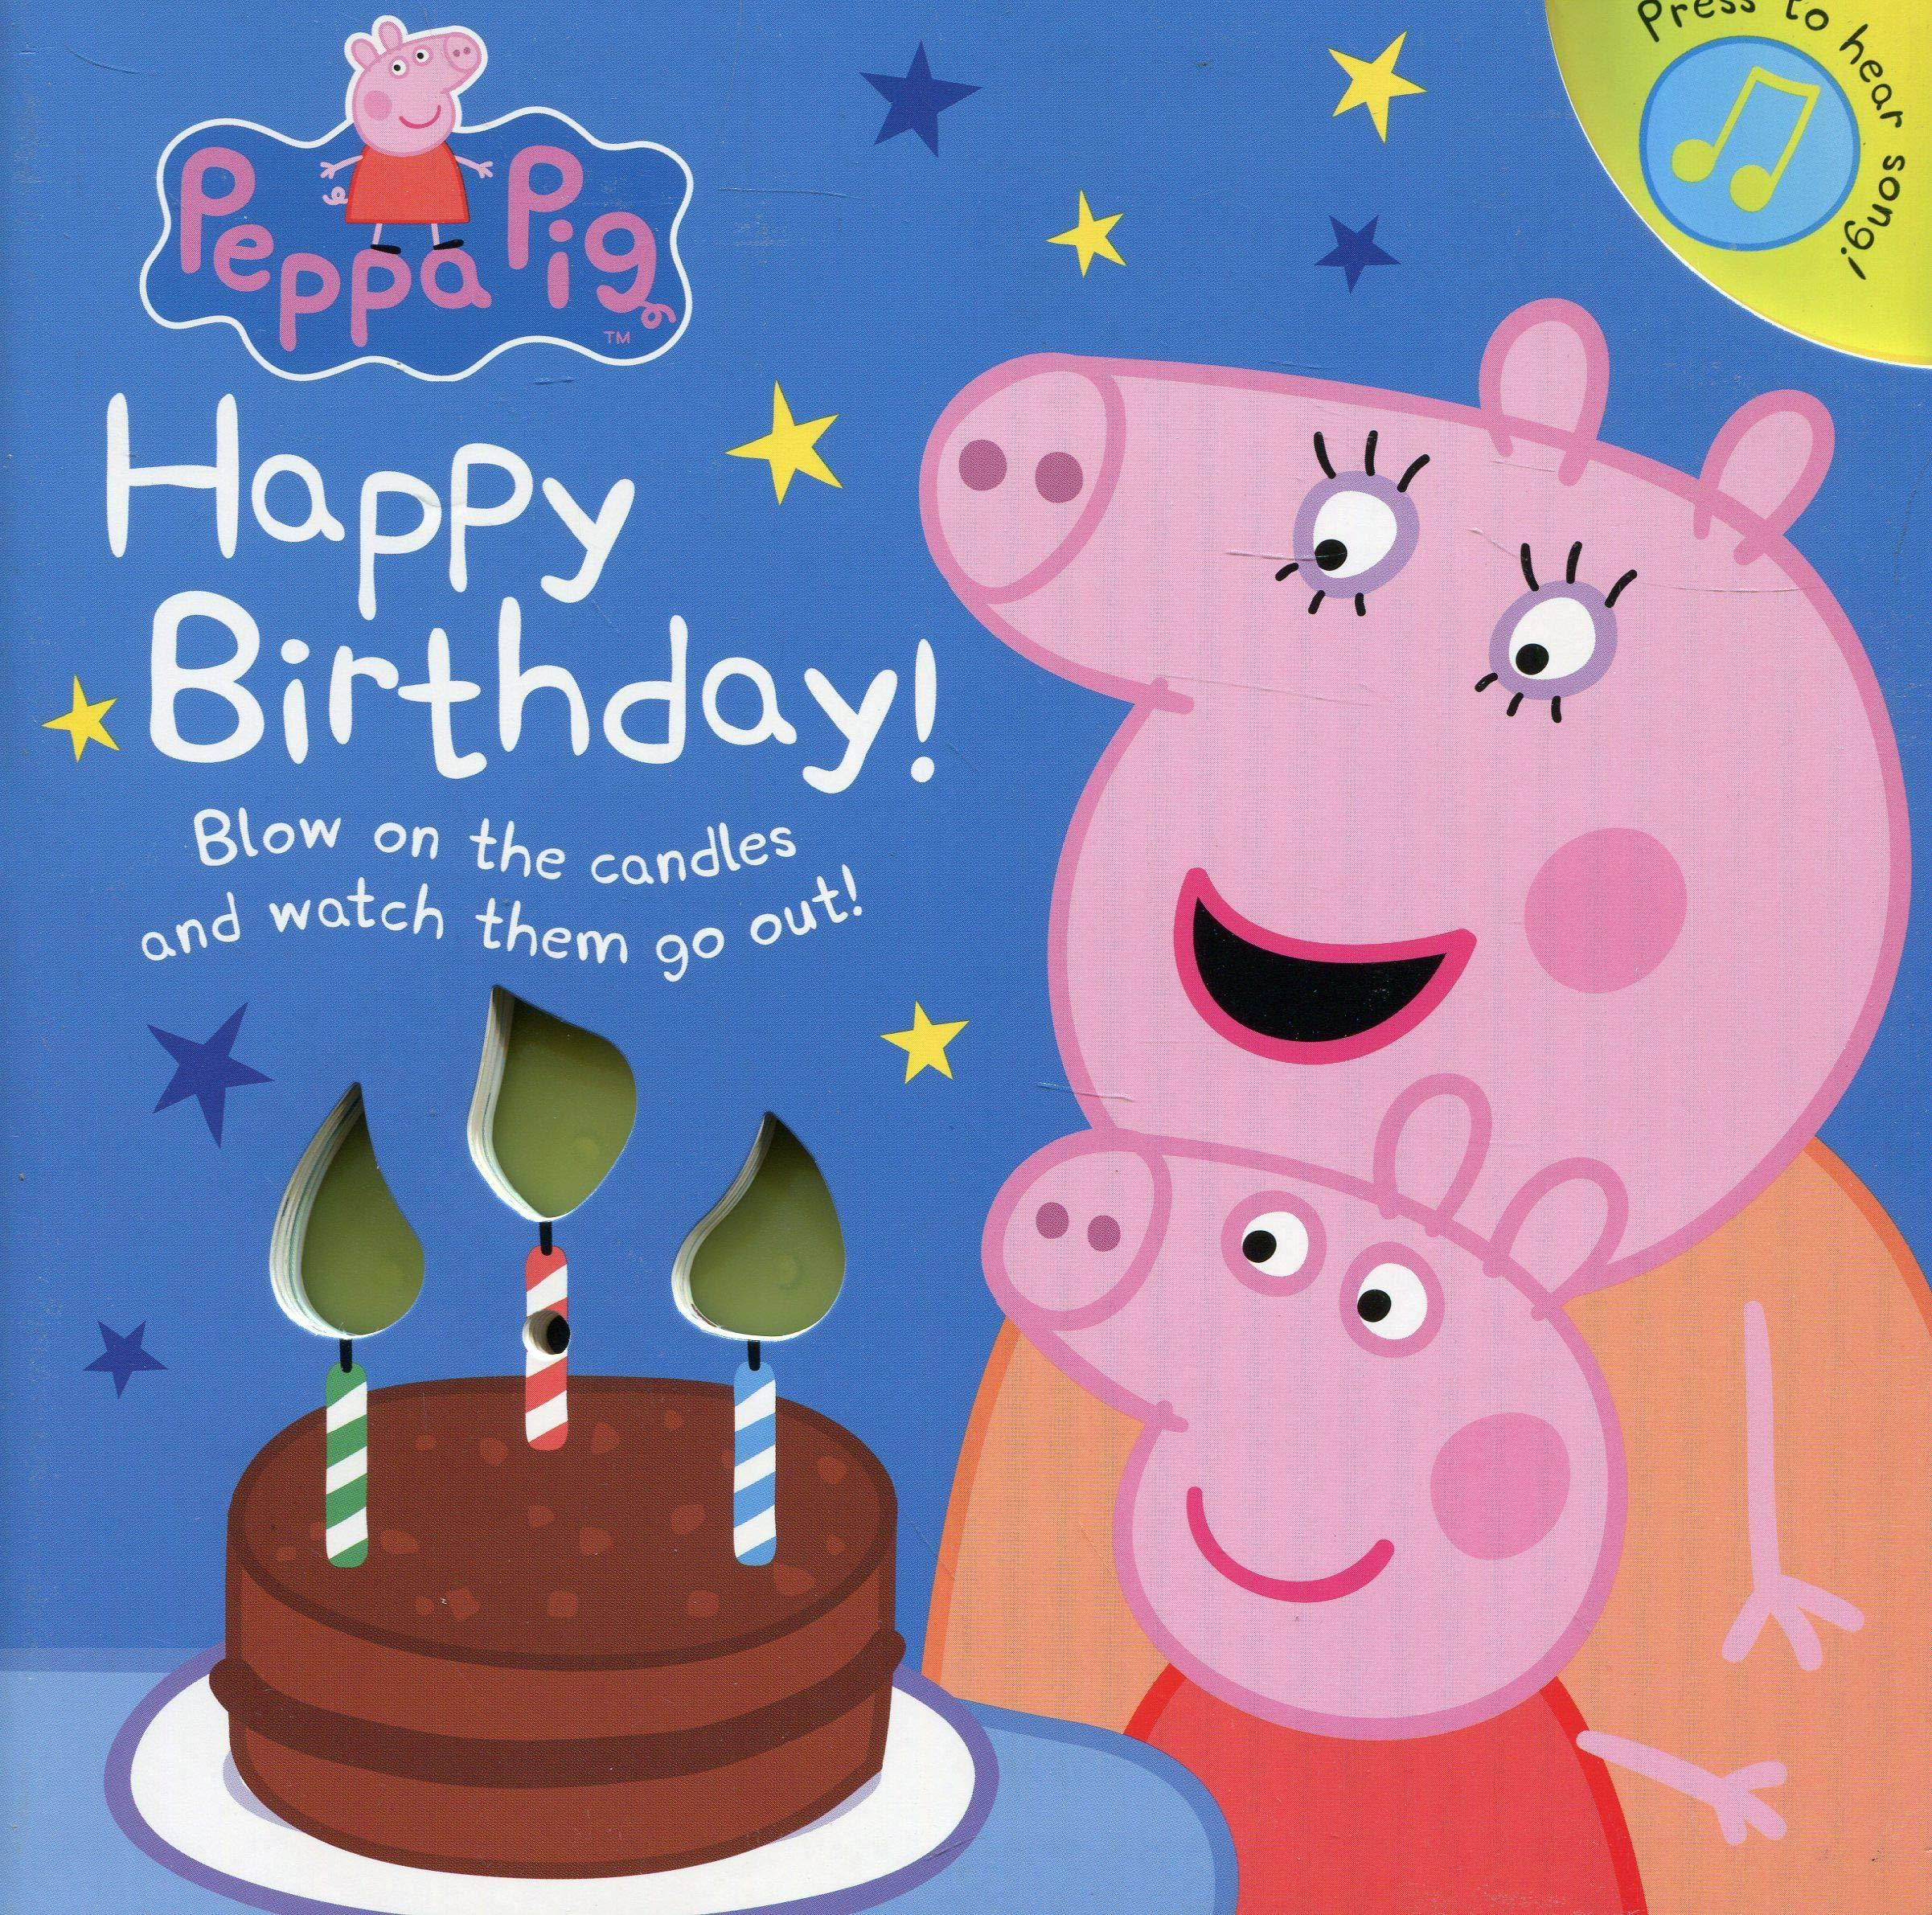 Peppa Pig: Happy Birthday!